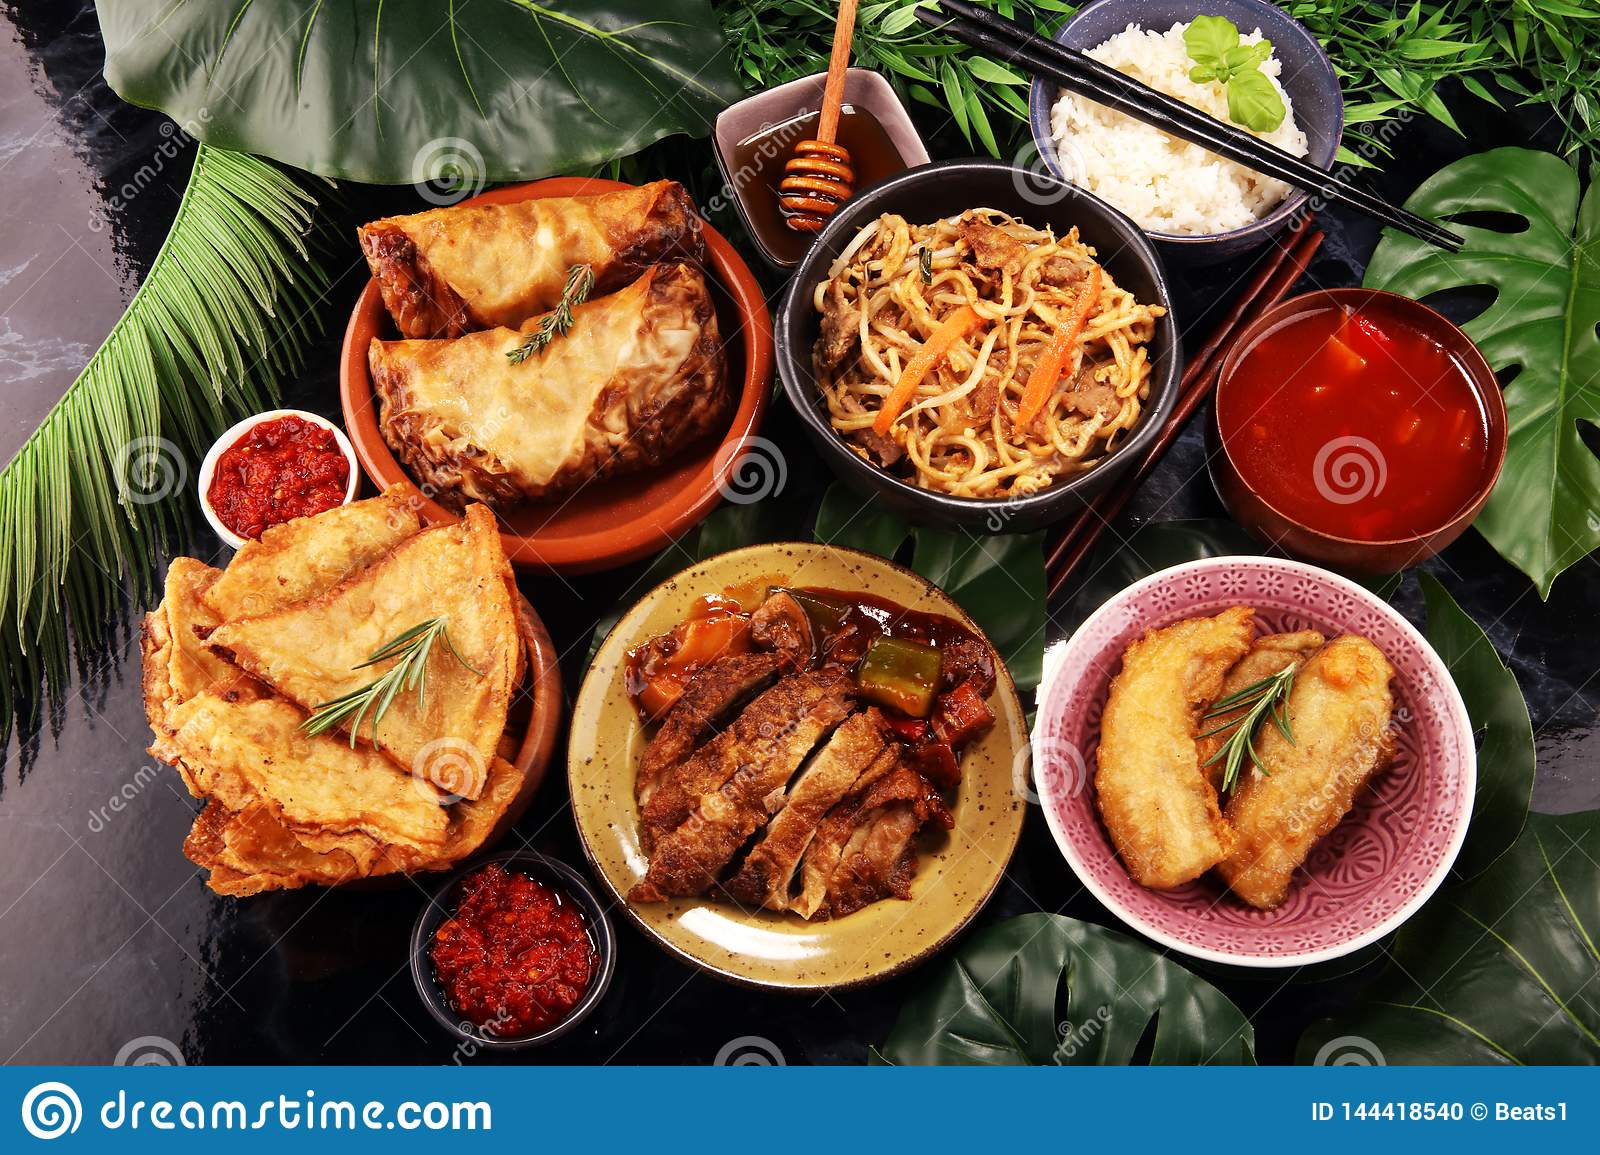 Assorted Chinese Food Set Chinese Noodles Fried Rice Peking Duck Dim Sum Spring Rolls Famous Chinese Cuisine Dishes On Table Stock Photo Image Of Noodles Vegetable 144418540